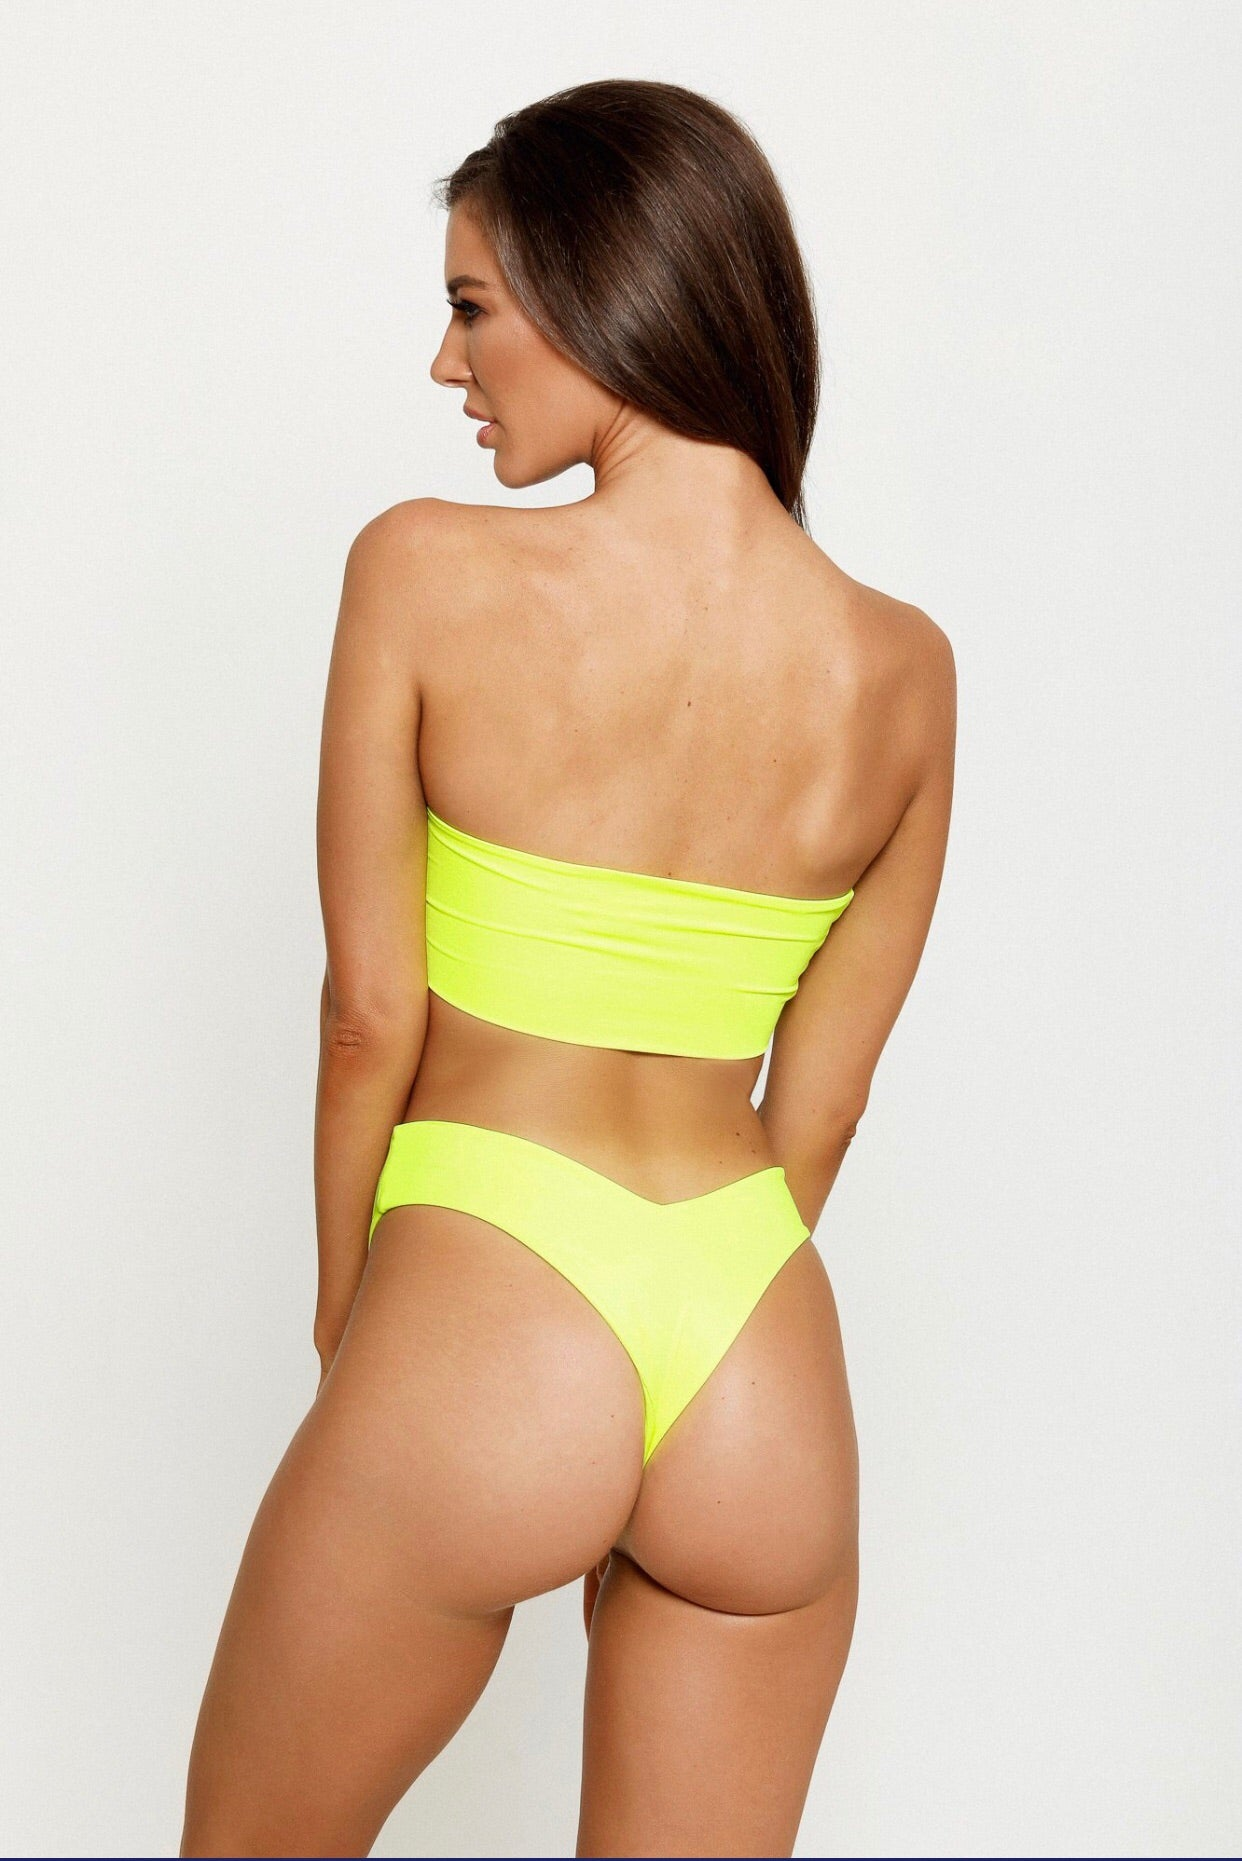 ASHANTI G BOTTOMS - NEON YELLOW